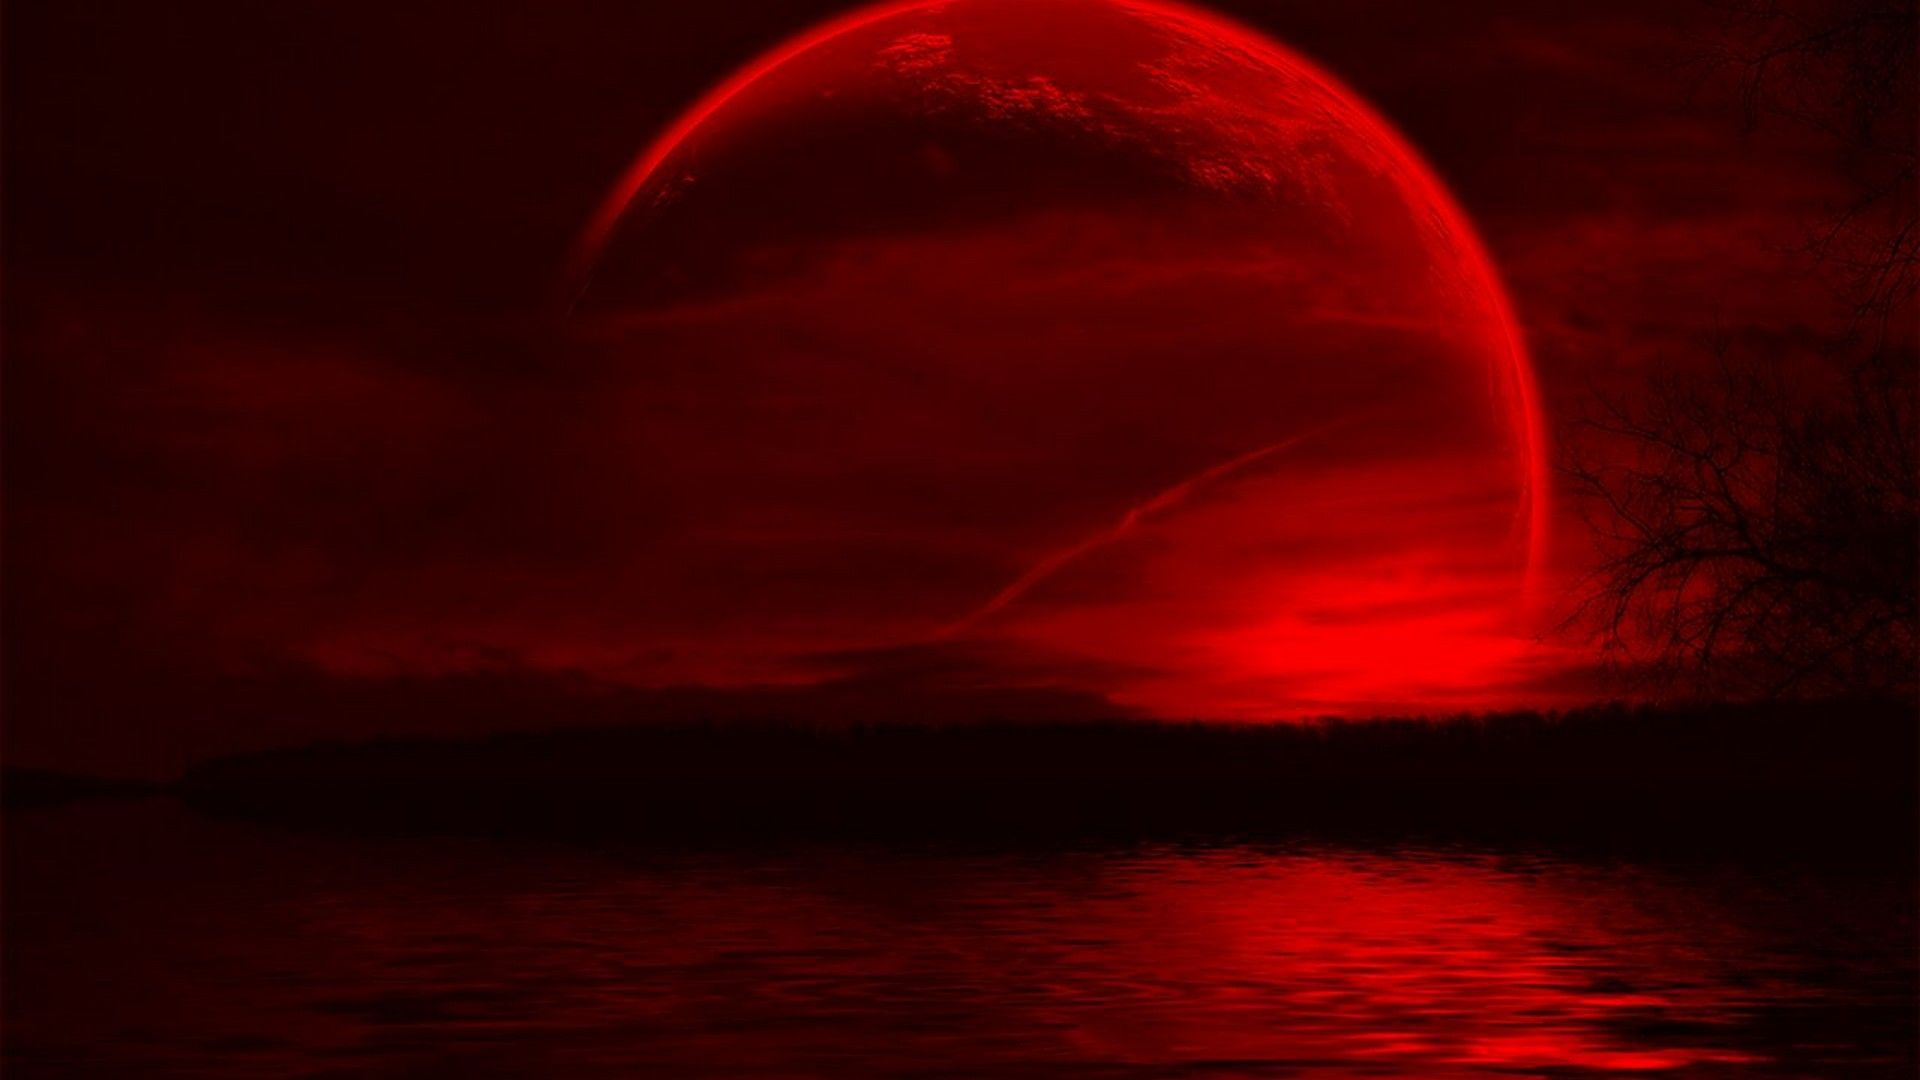 Super Moon Lunar Eclipse Wallpaper HD Blood red moon Red moon 1920x1080